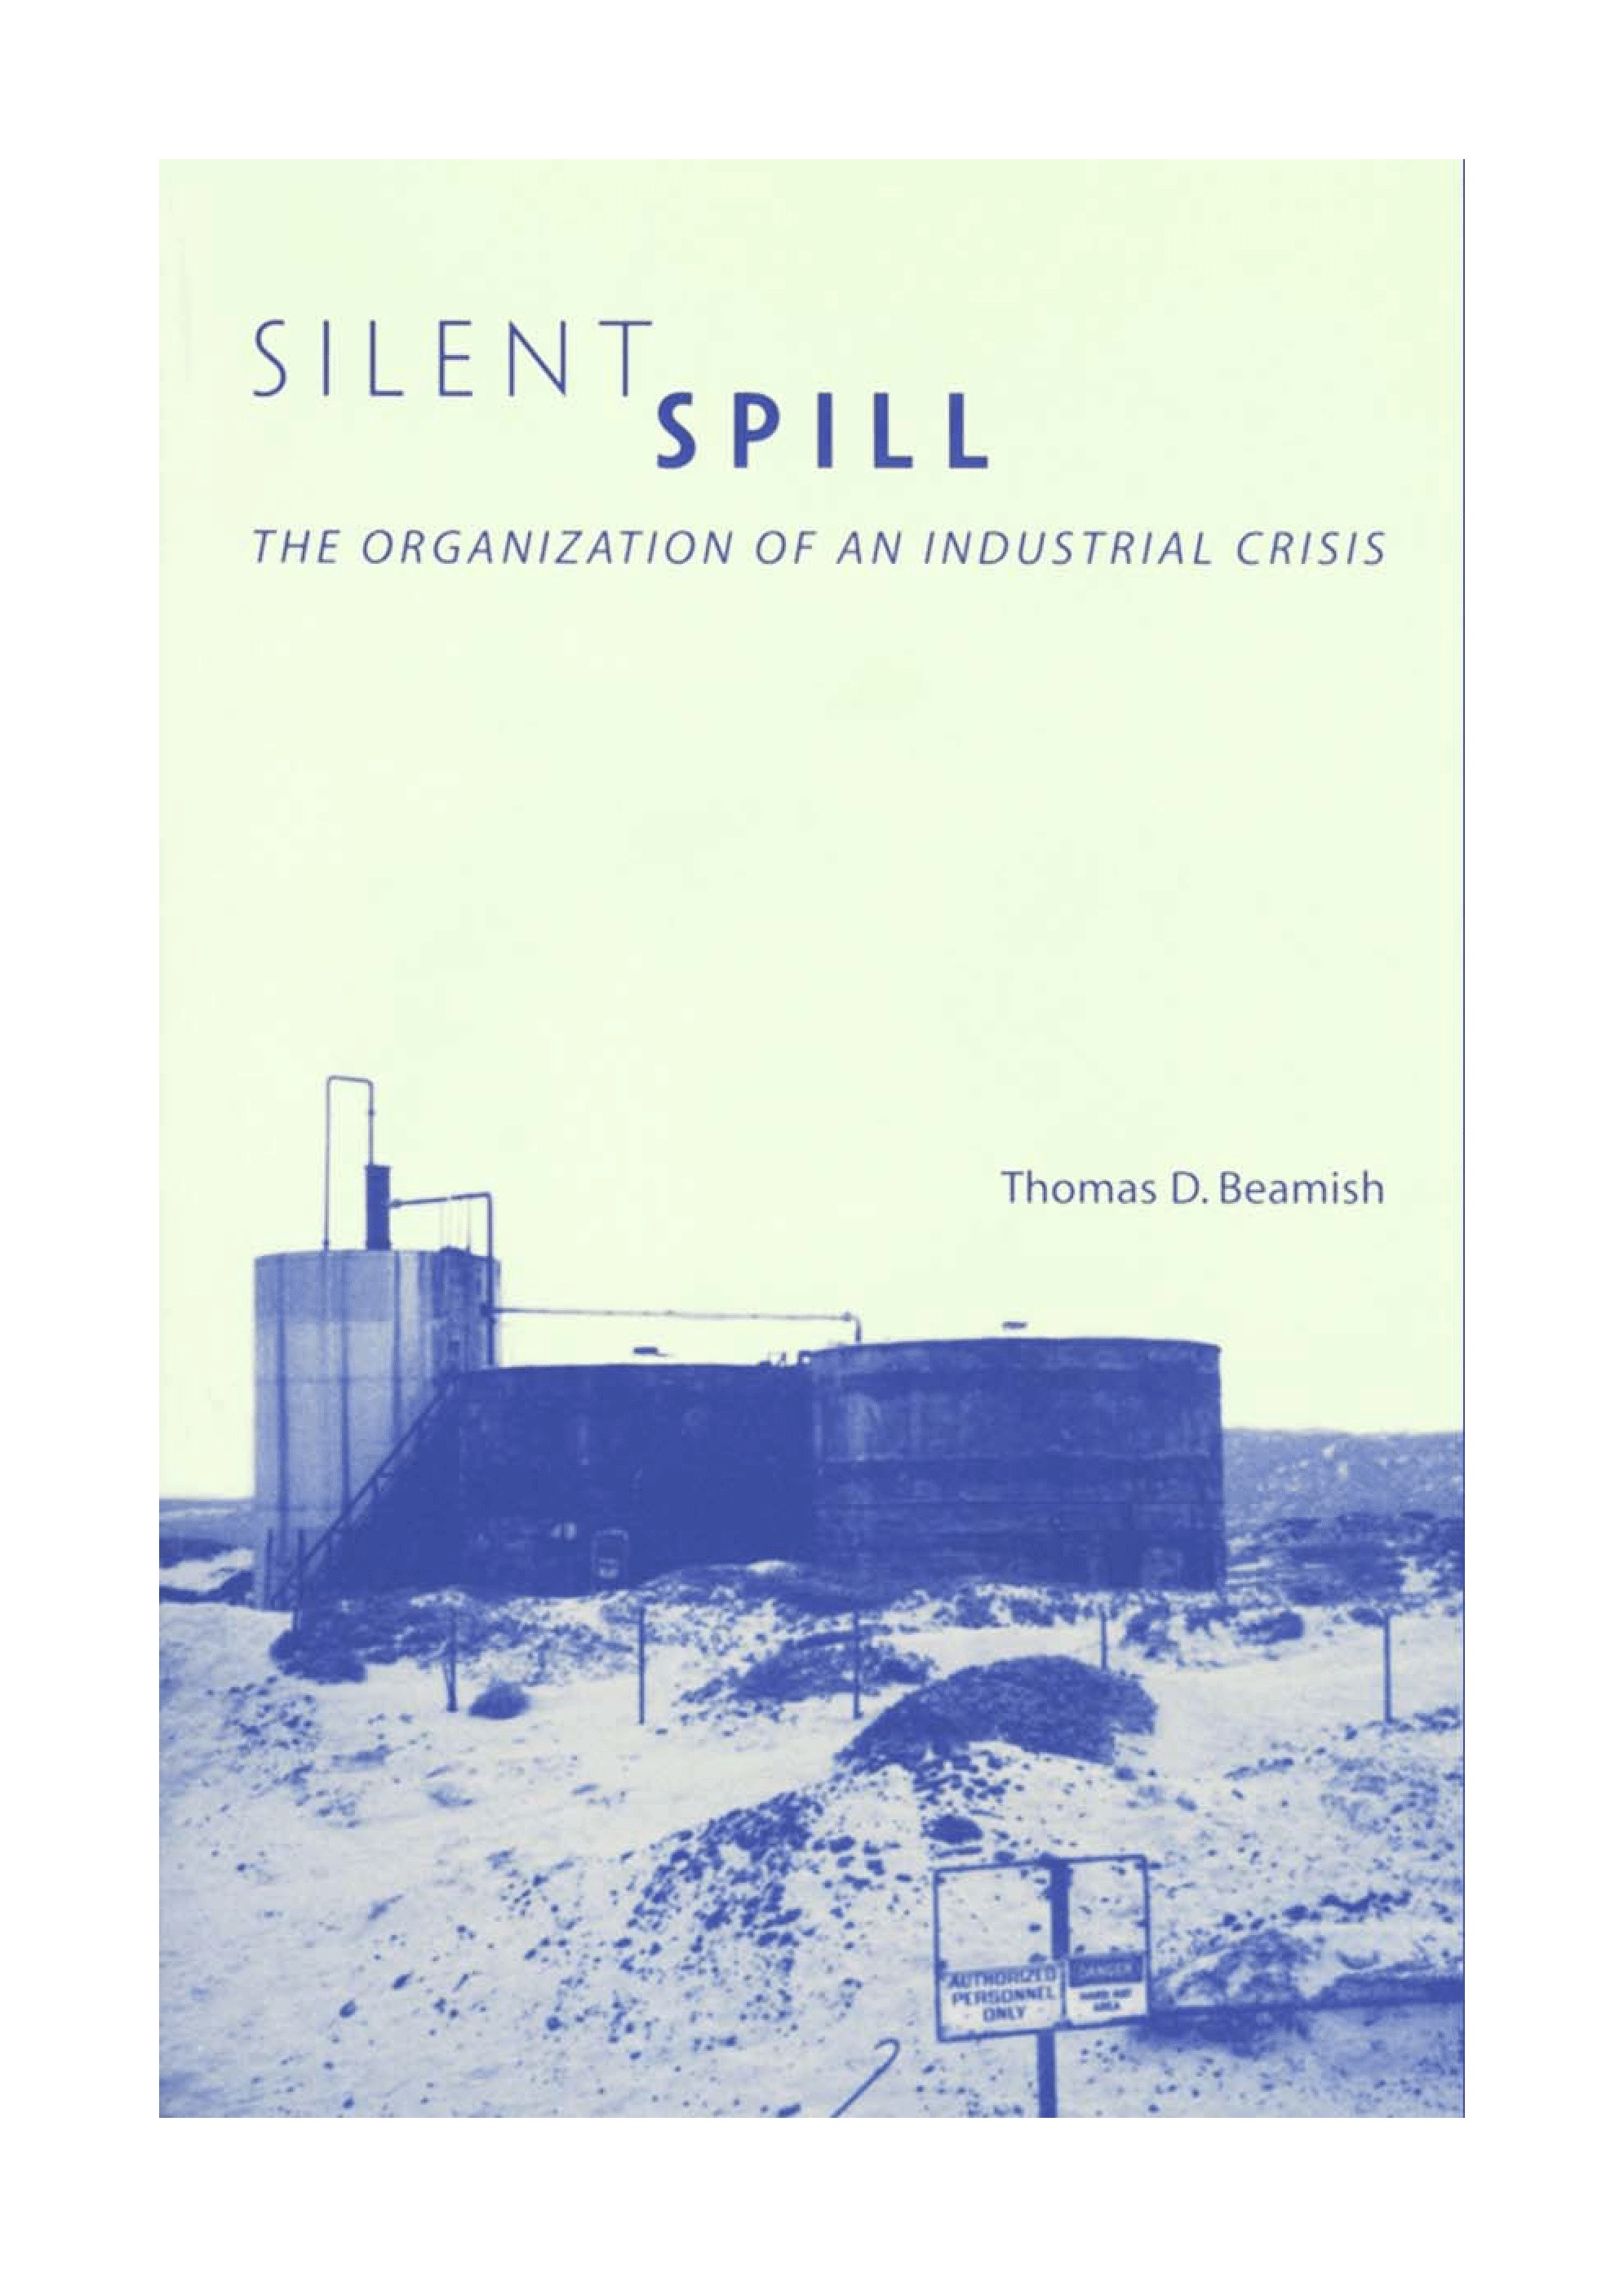 Silent Spill: The Organization of an Industrial Crisis